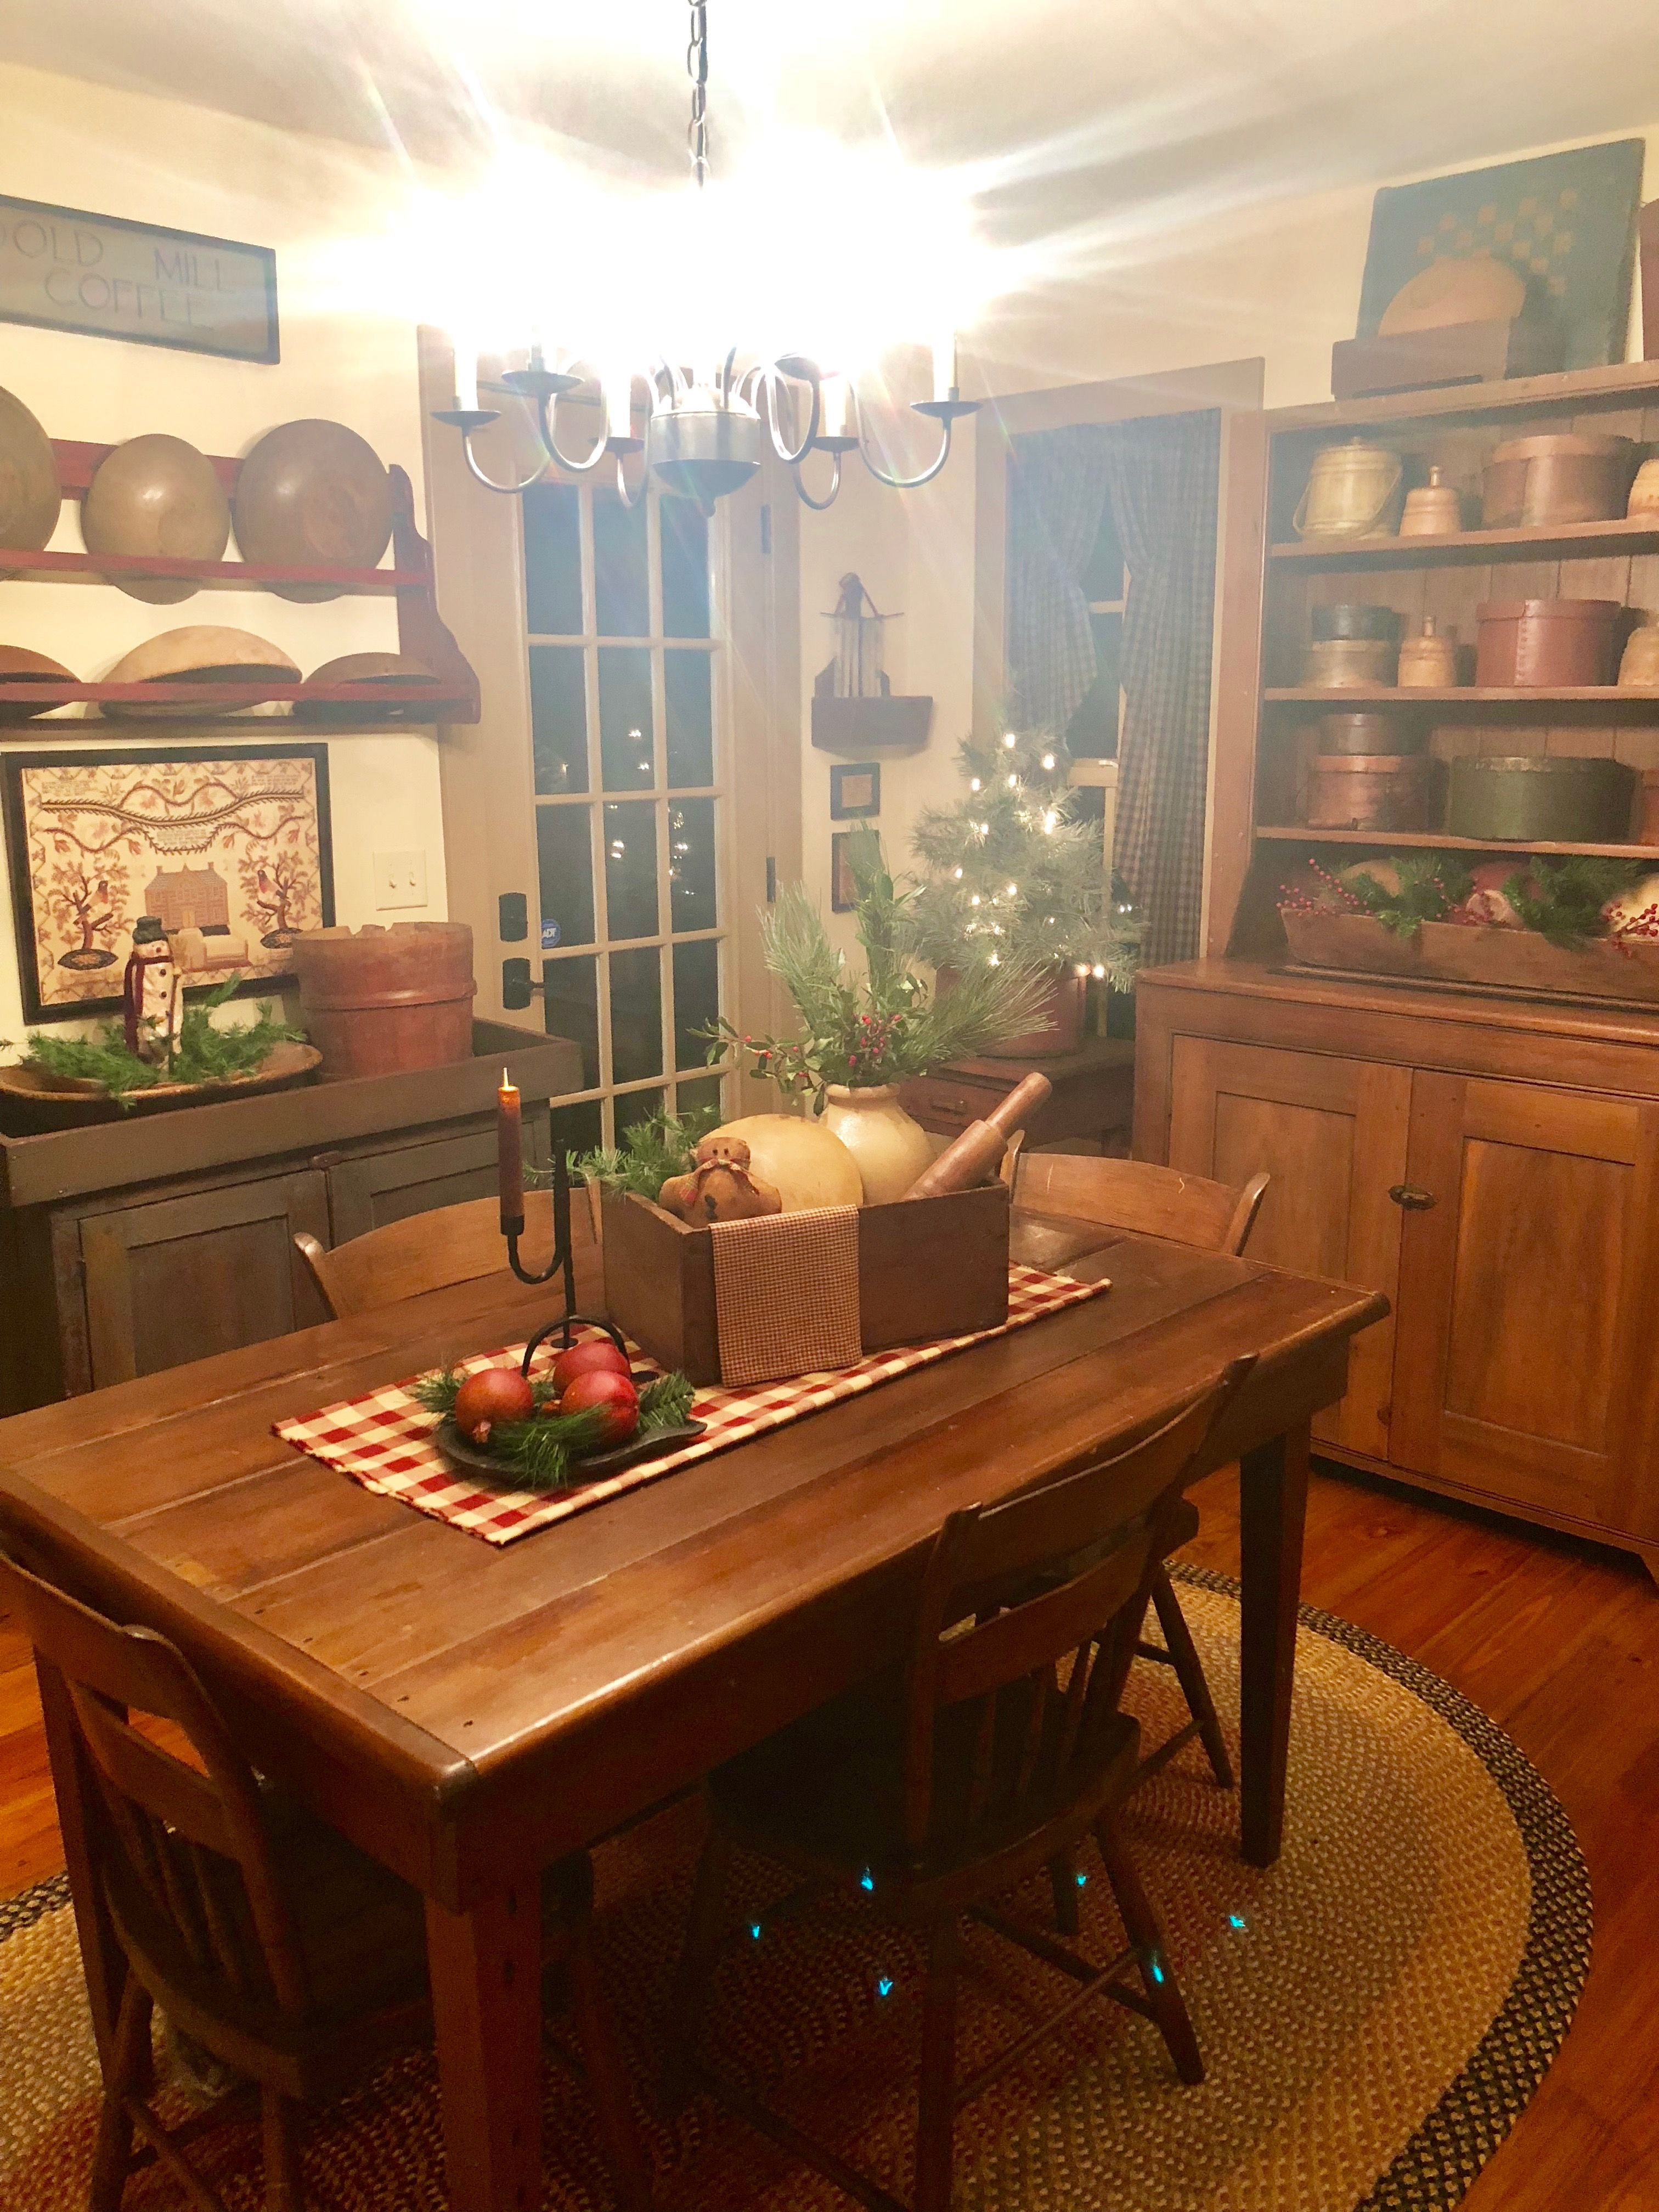 Christmas Decor Ideas For Your Dining Room Decor Simple And Beautiful Last Minute Christmas Decorations Primitive Kitchen Primitive Homes Rustic Kitchen